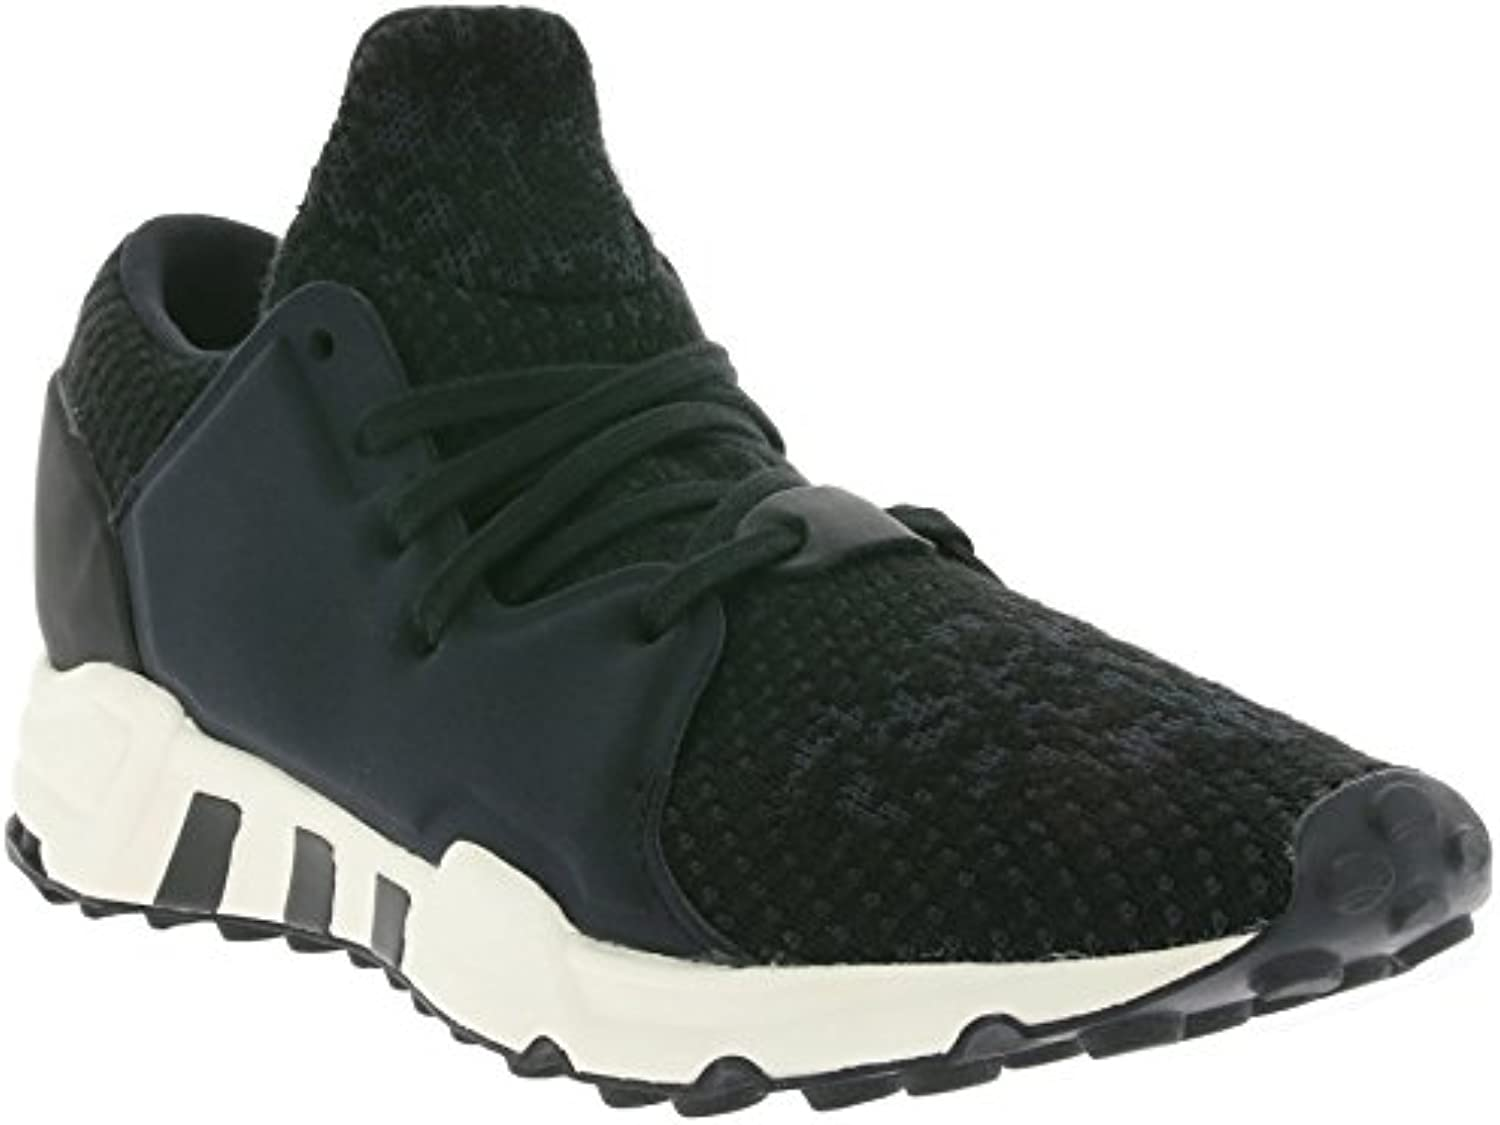 Sneaker Adidas by Stella Mccartney Crazy Move Bounce -